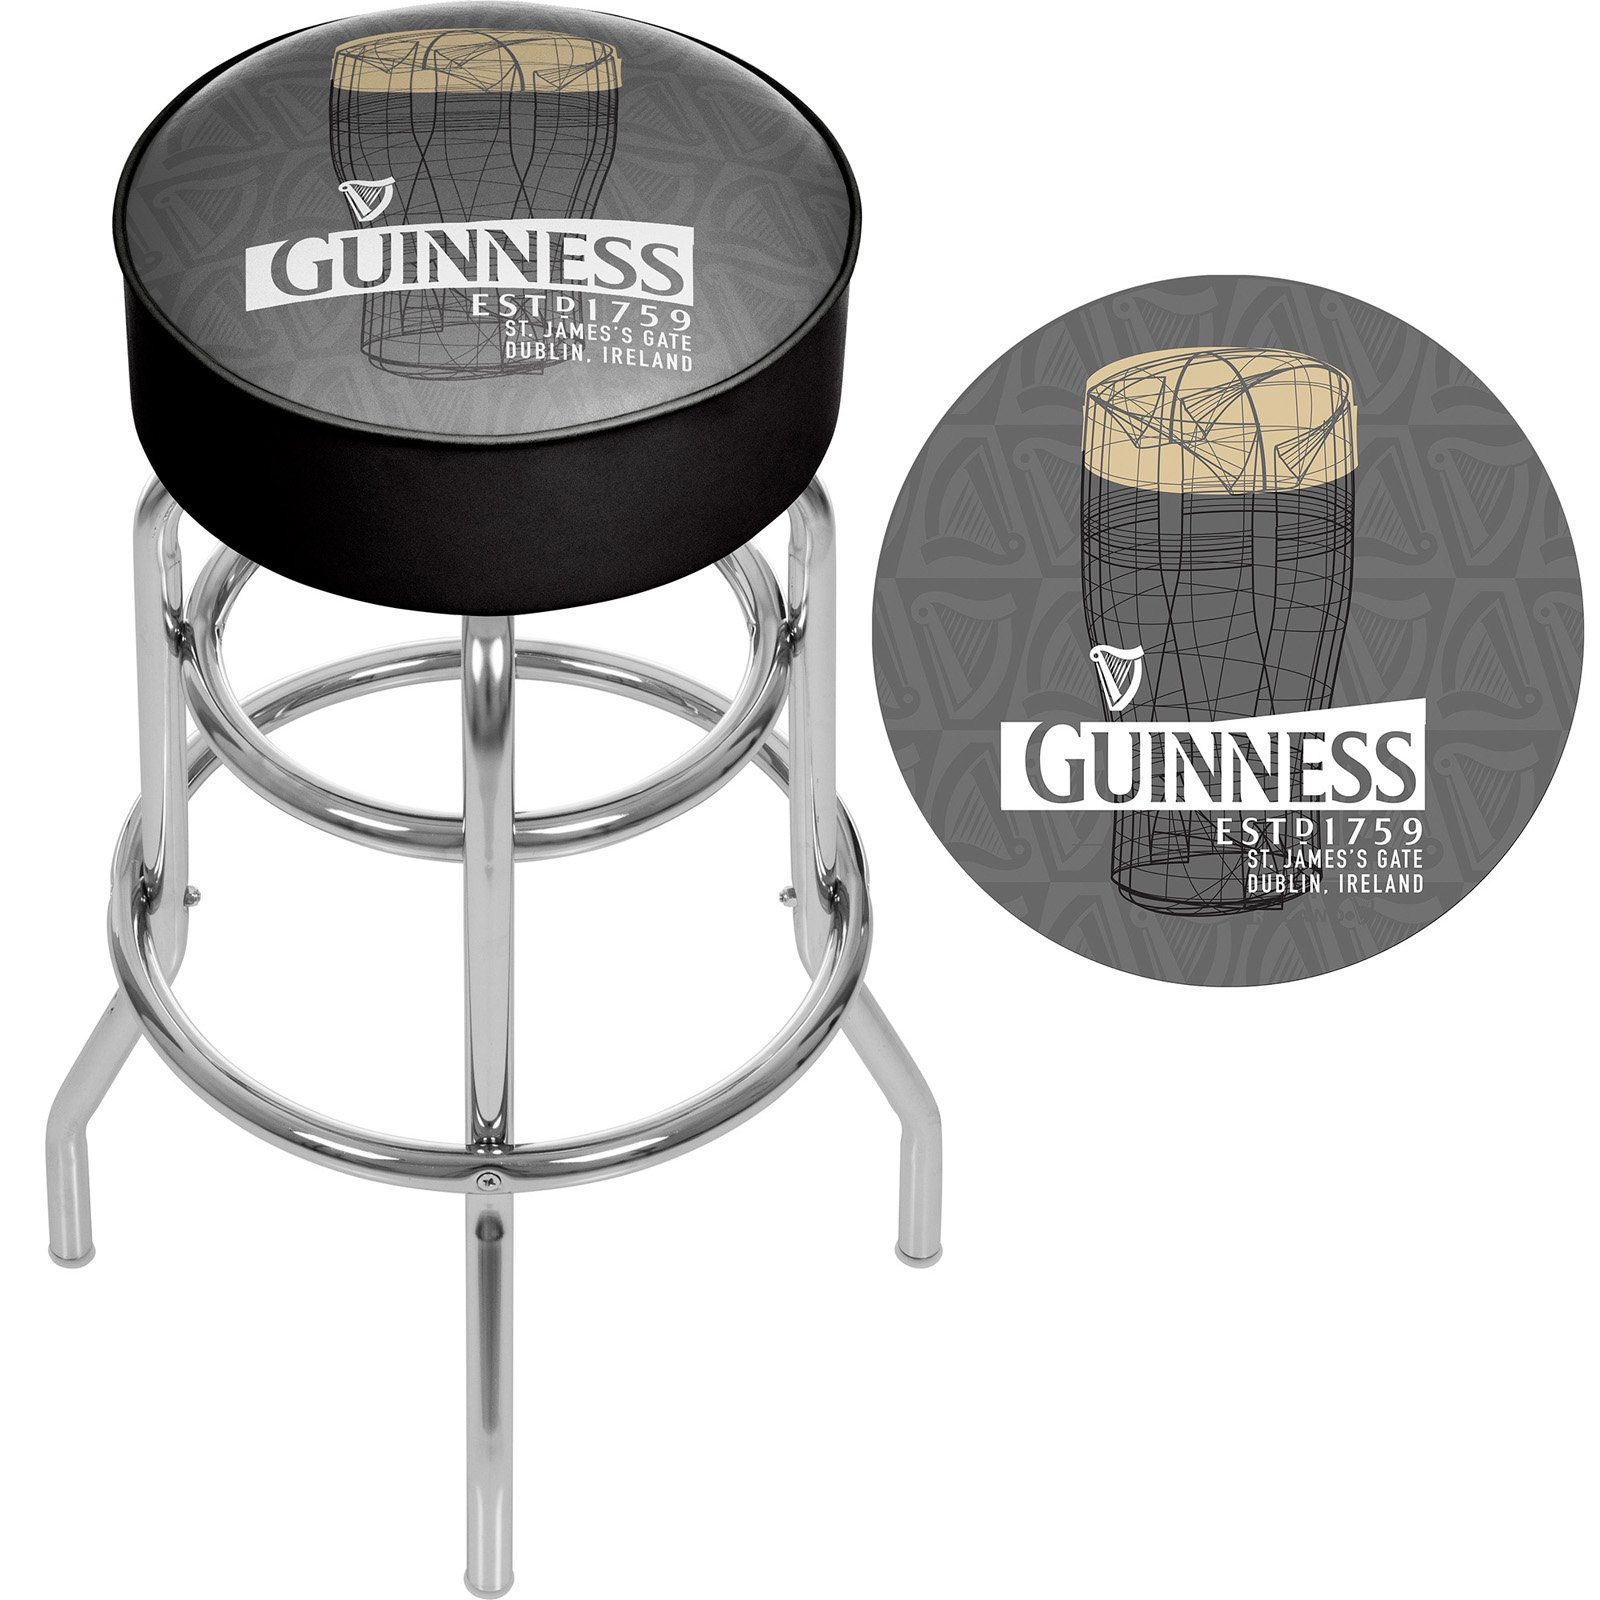 Peachy Guinness Padded Swivel Bar Stool Products In 2019 Swivel Caraccident5 Cool Chair Designs And Ideas Caraccident5Info